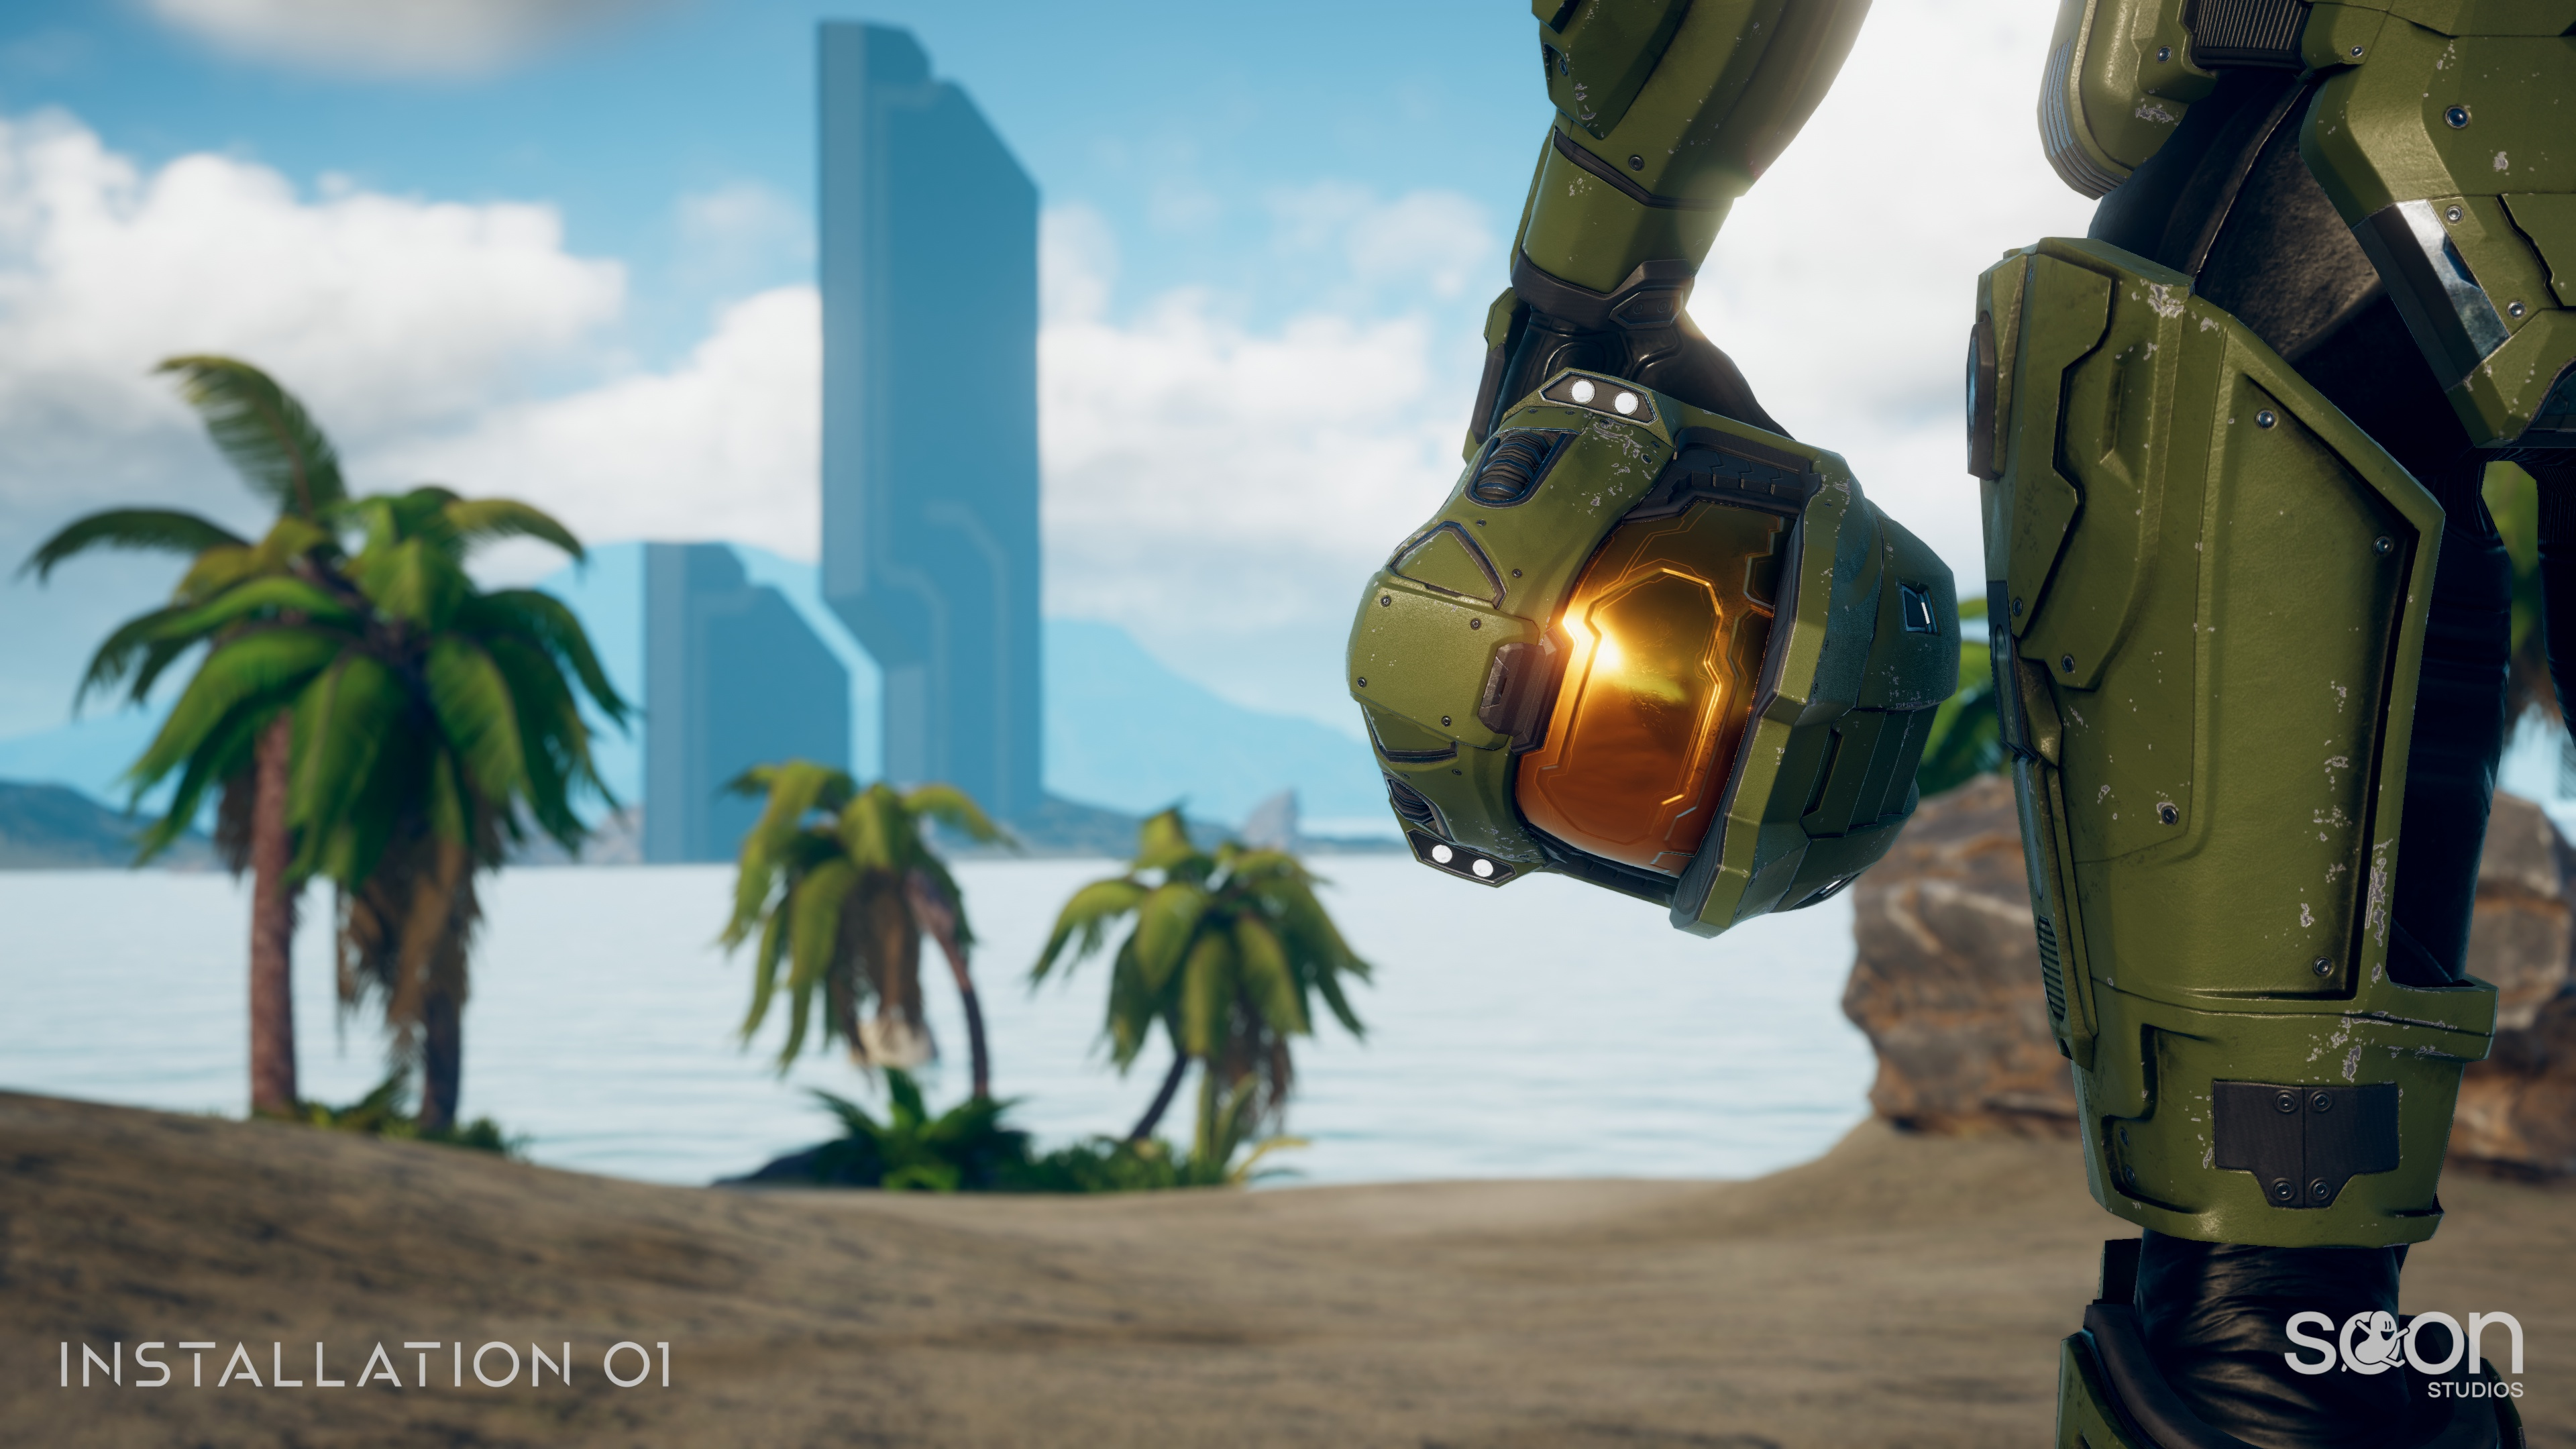 Installation 01 Halo Infinite wallpaper